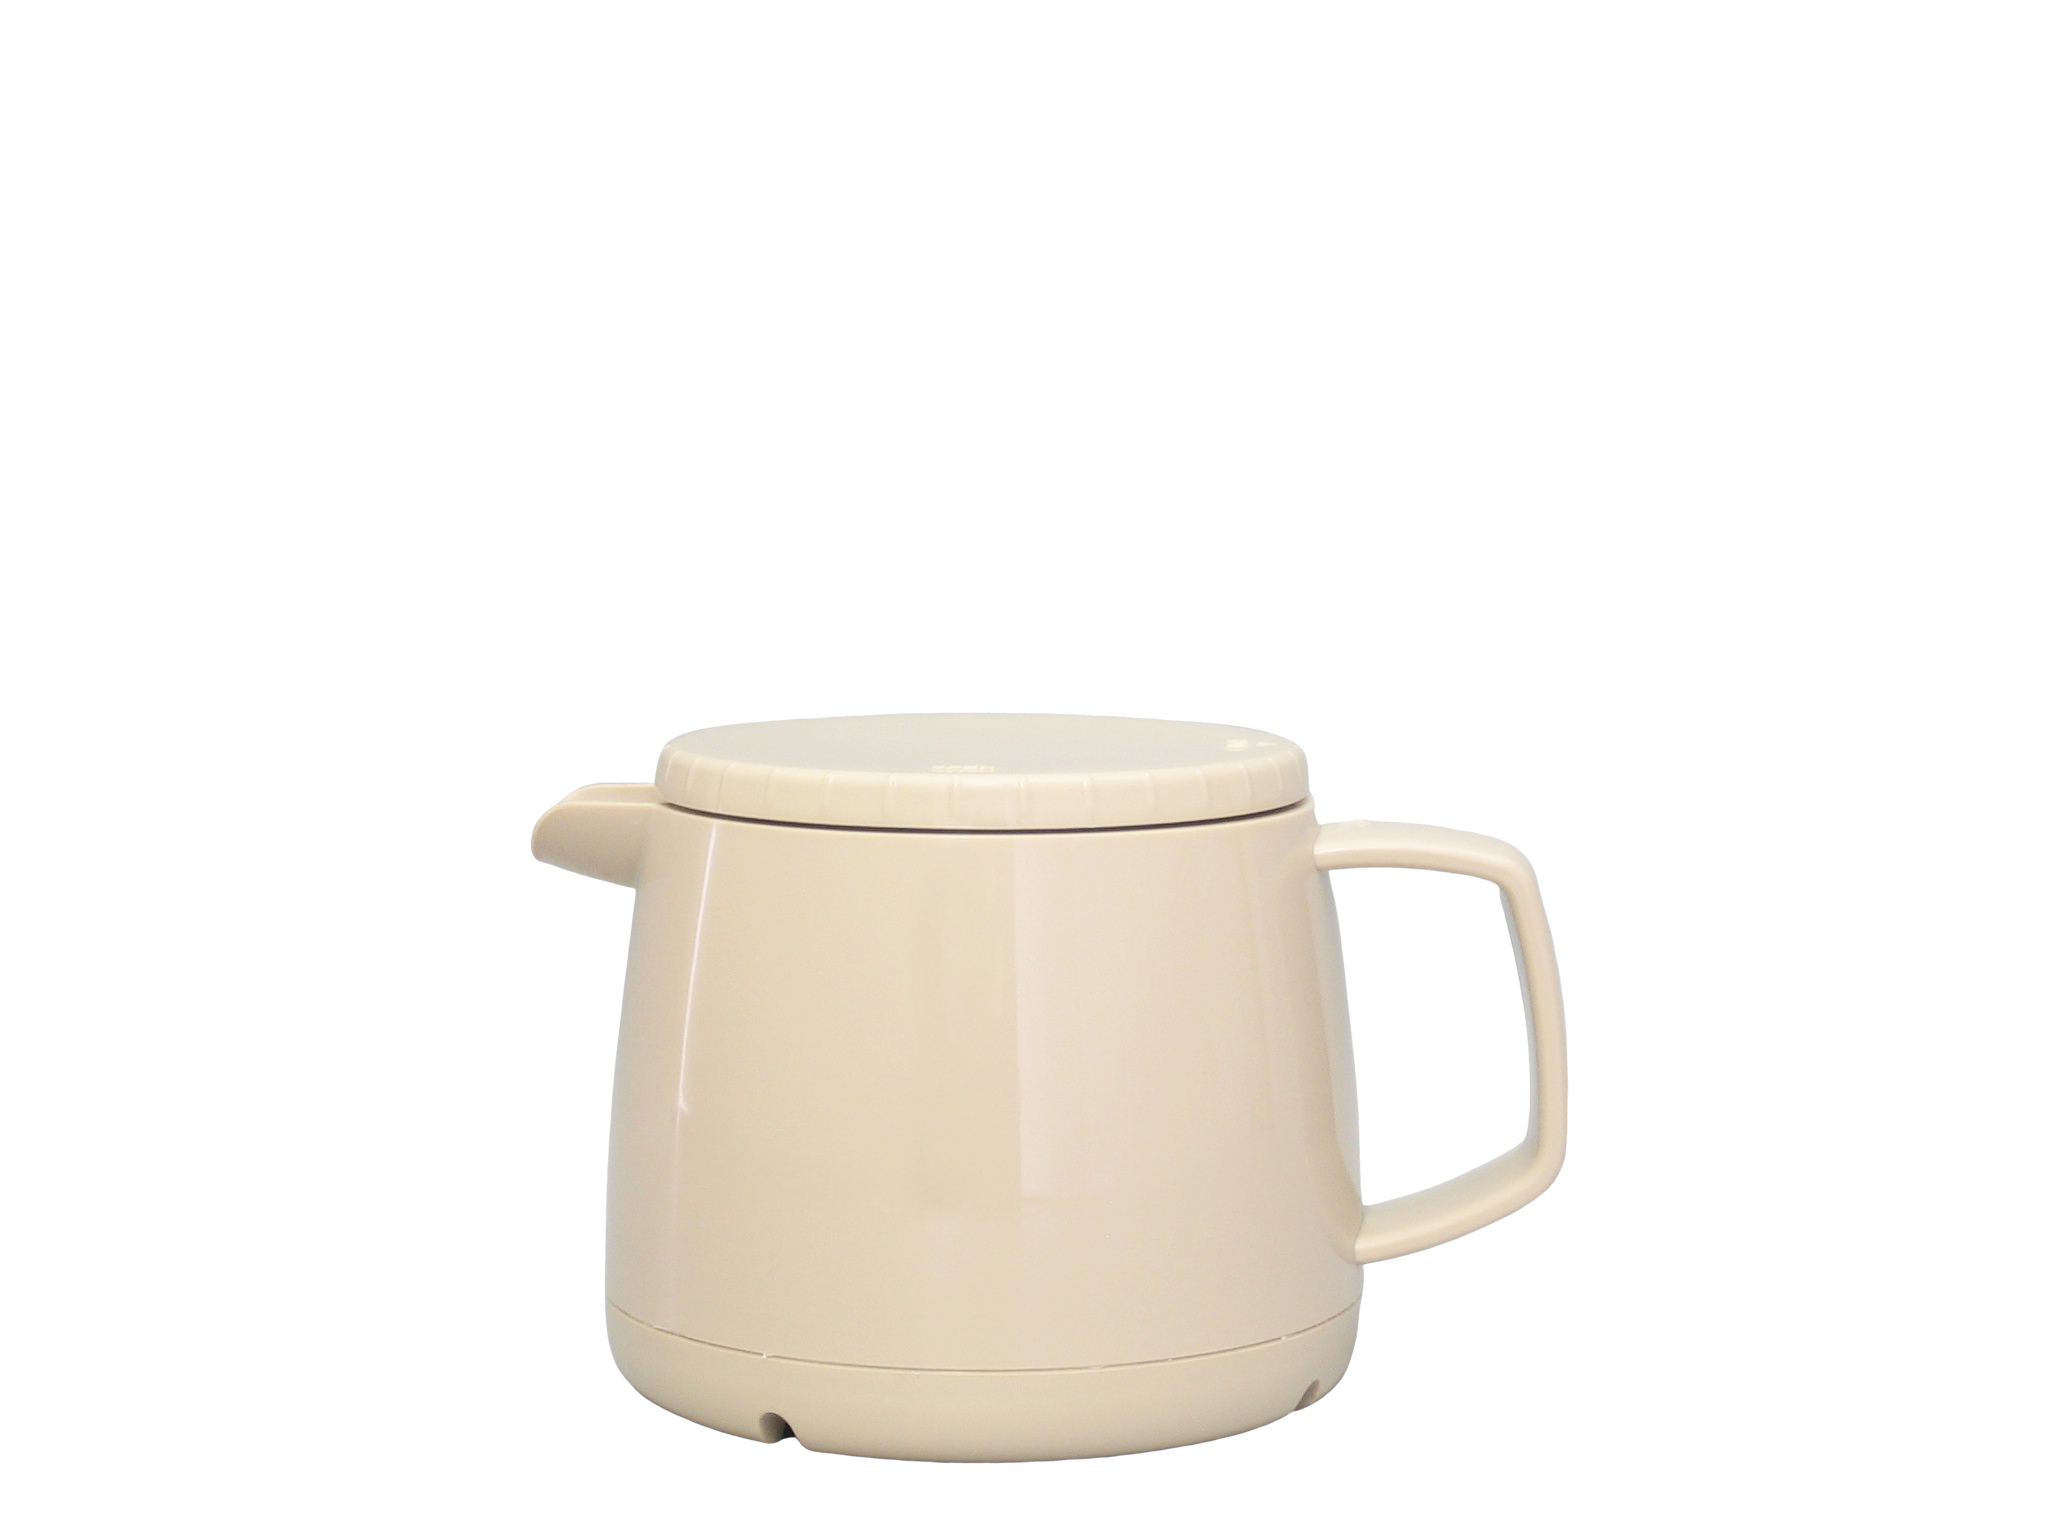 JAZZ030-042 - Insulated carafe low height stackable beige 0.30 L - Isobel